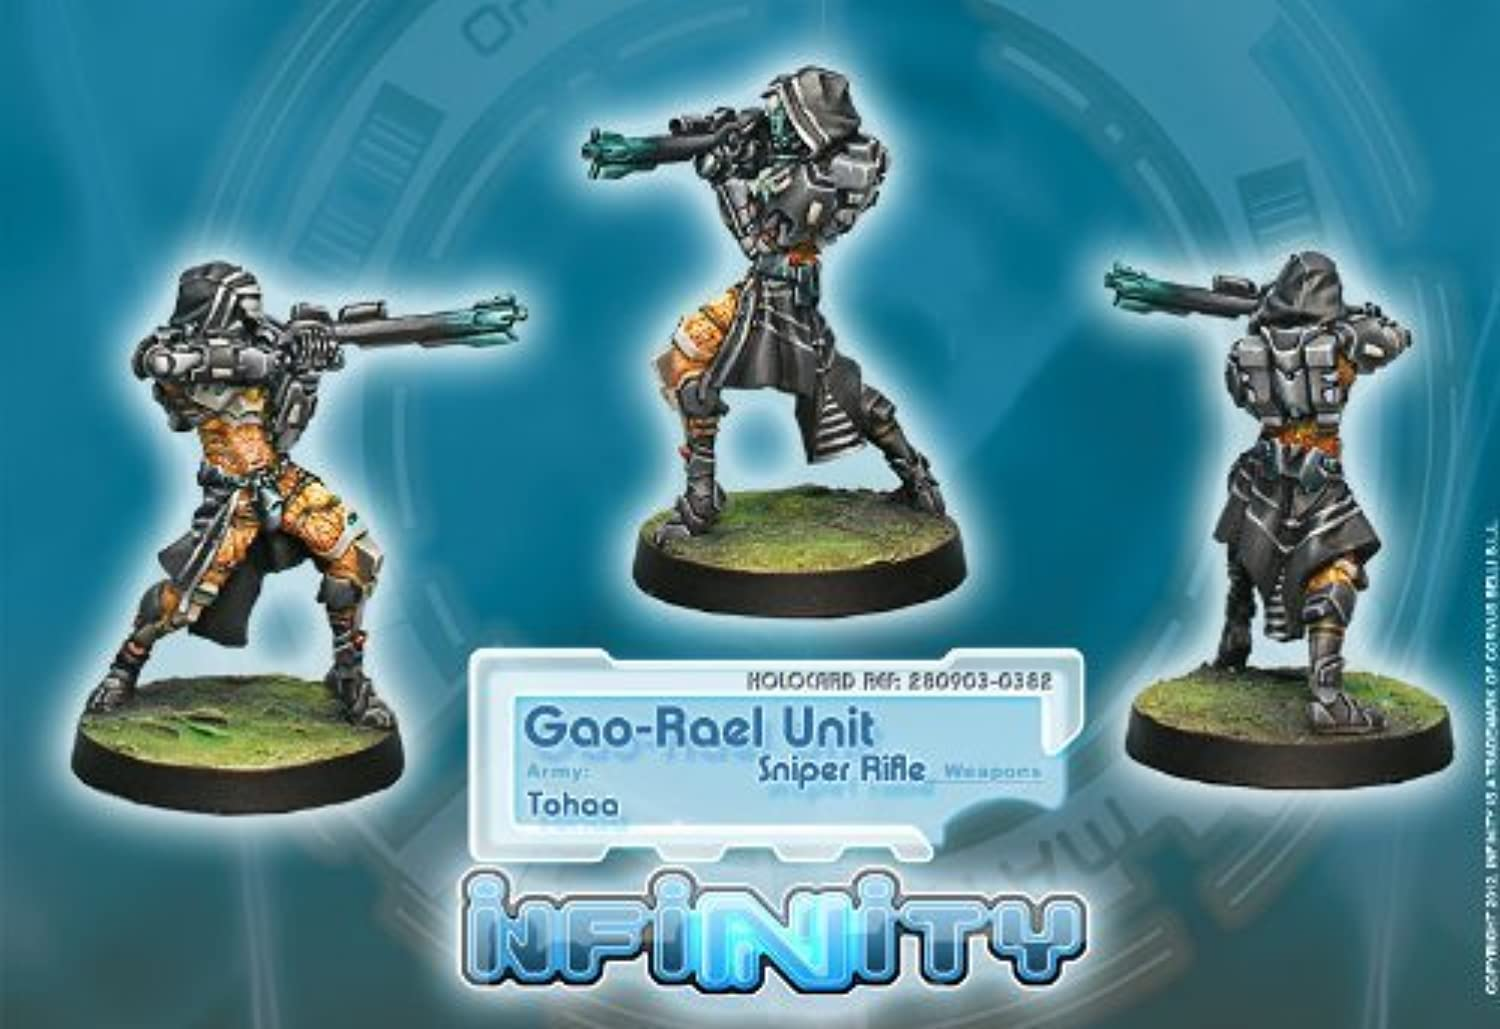 Infinity  Tohaa  GaoRael Unit (Sniper Rifle) by Corvus Belli